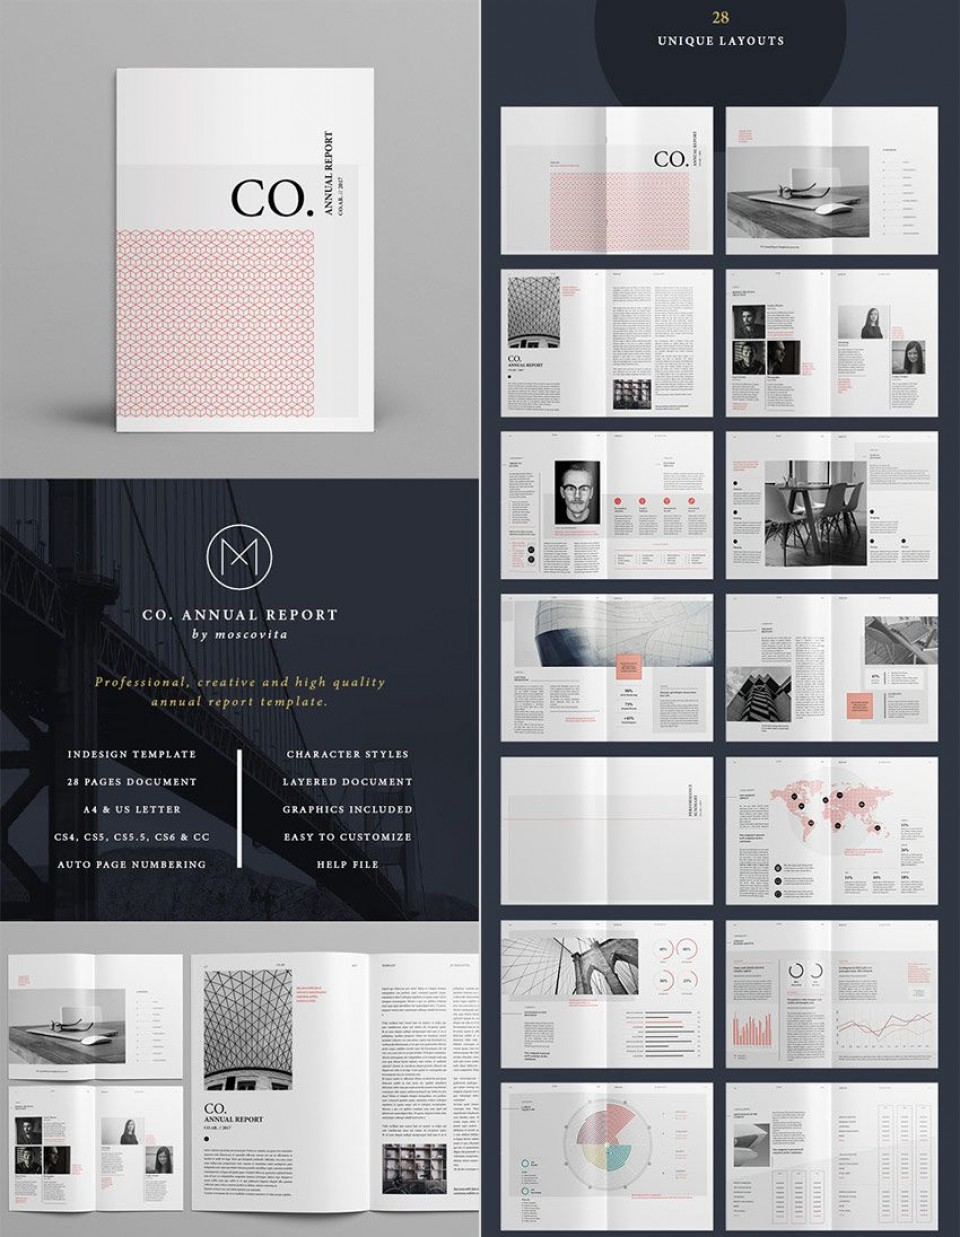 007 Fascinating Annual Report Design Template Indesign Highest Clarity  Free Download960